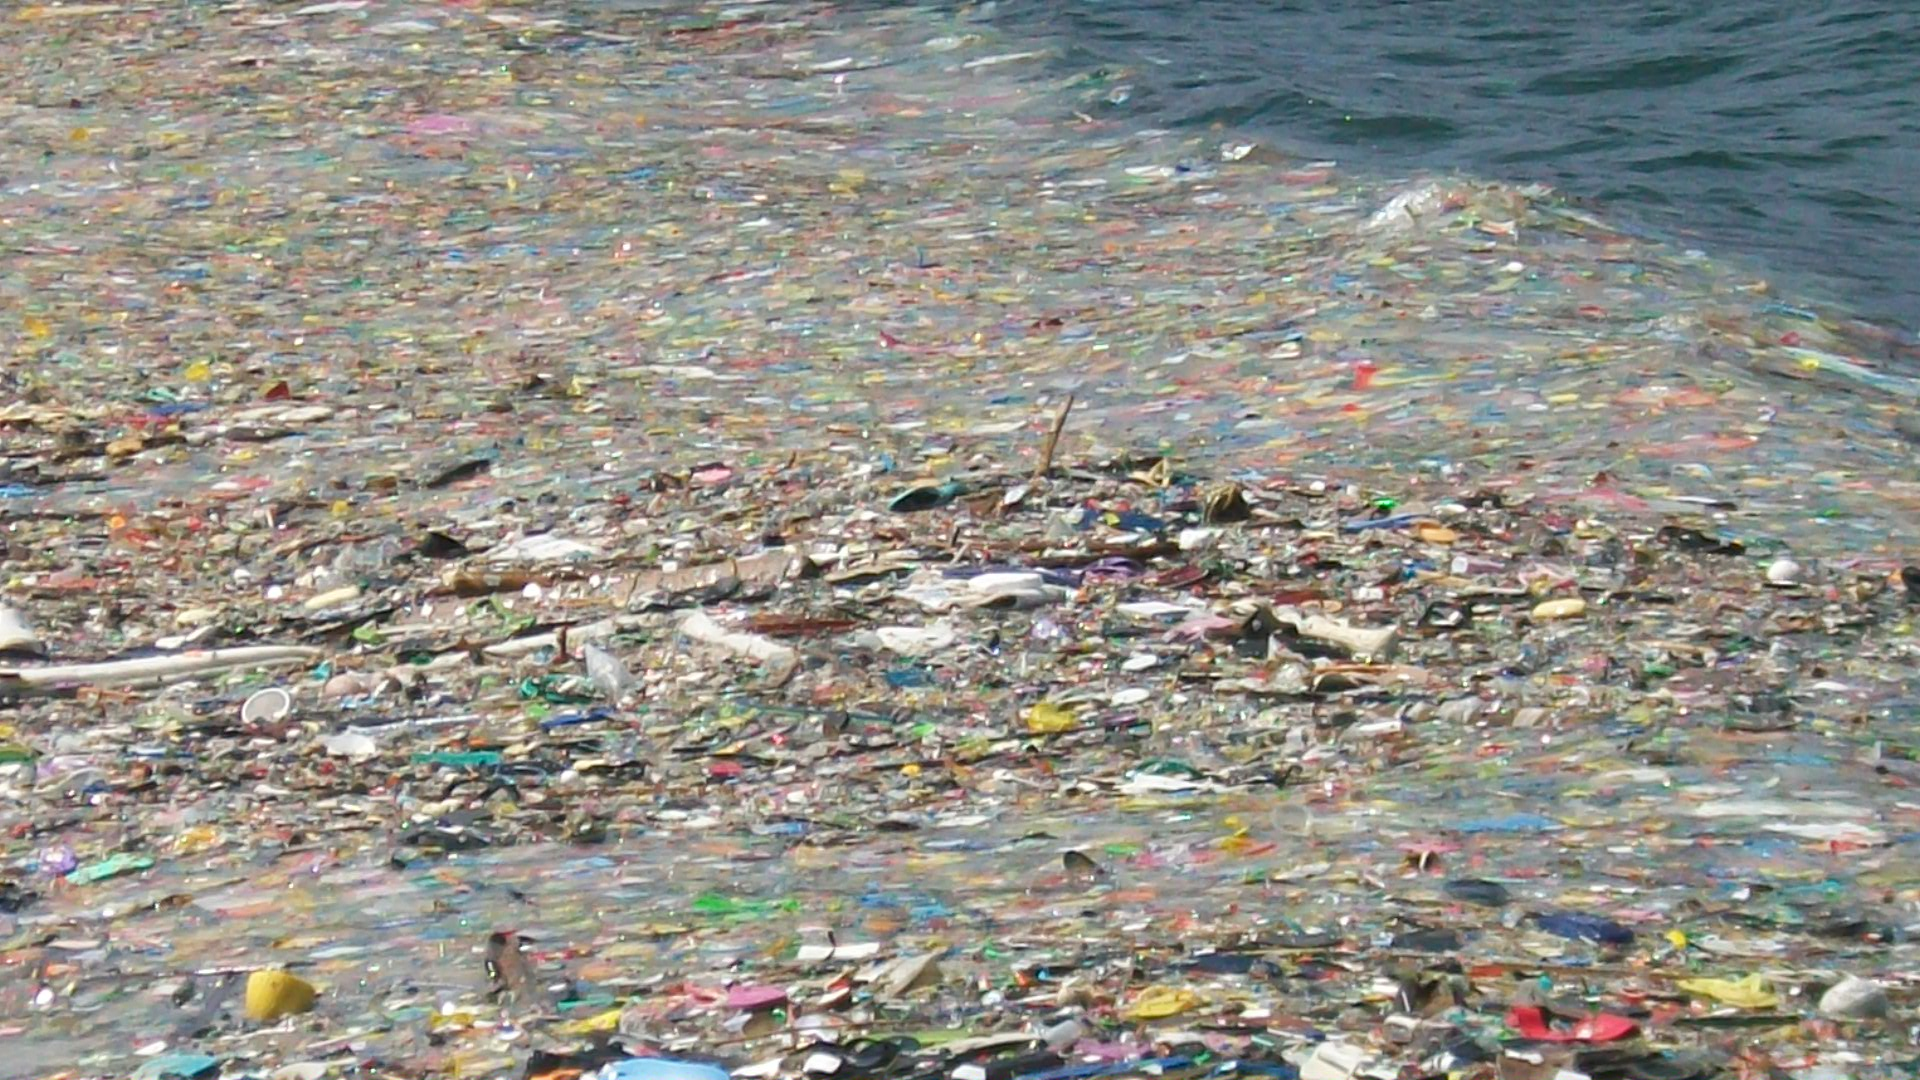 Eastern pacific garbage patch photos # Before And After Weight Loss Photos Women - Meal Plan